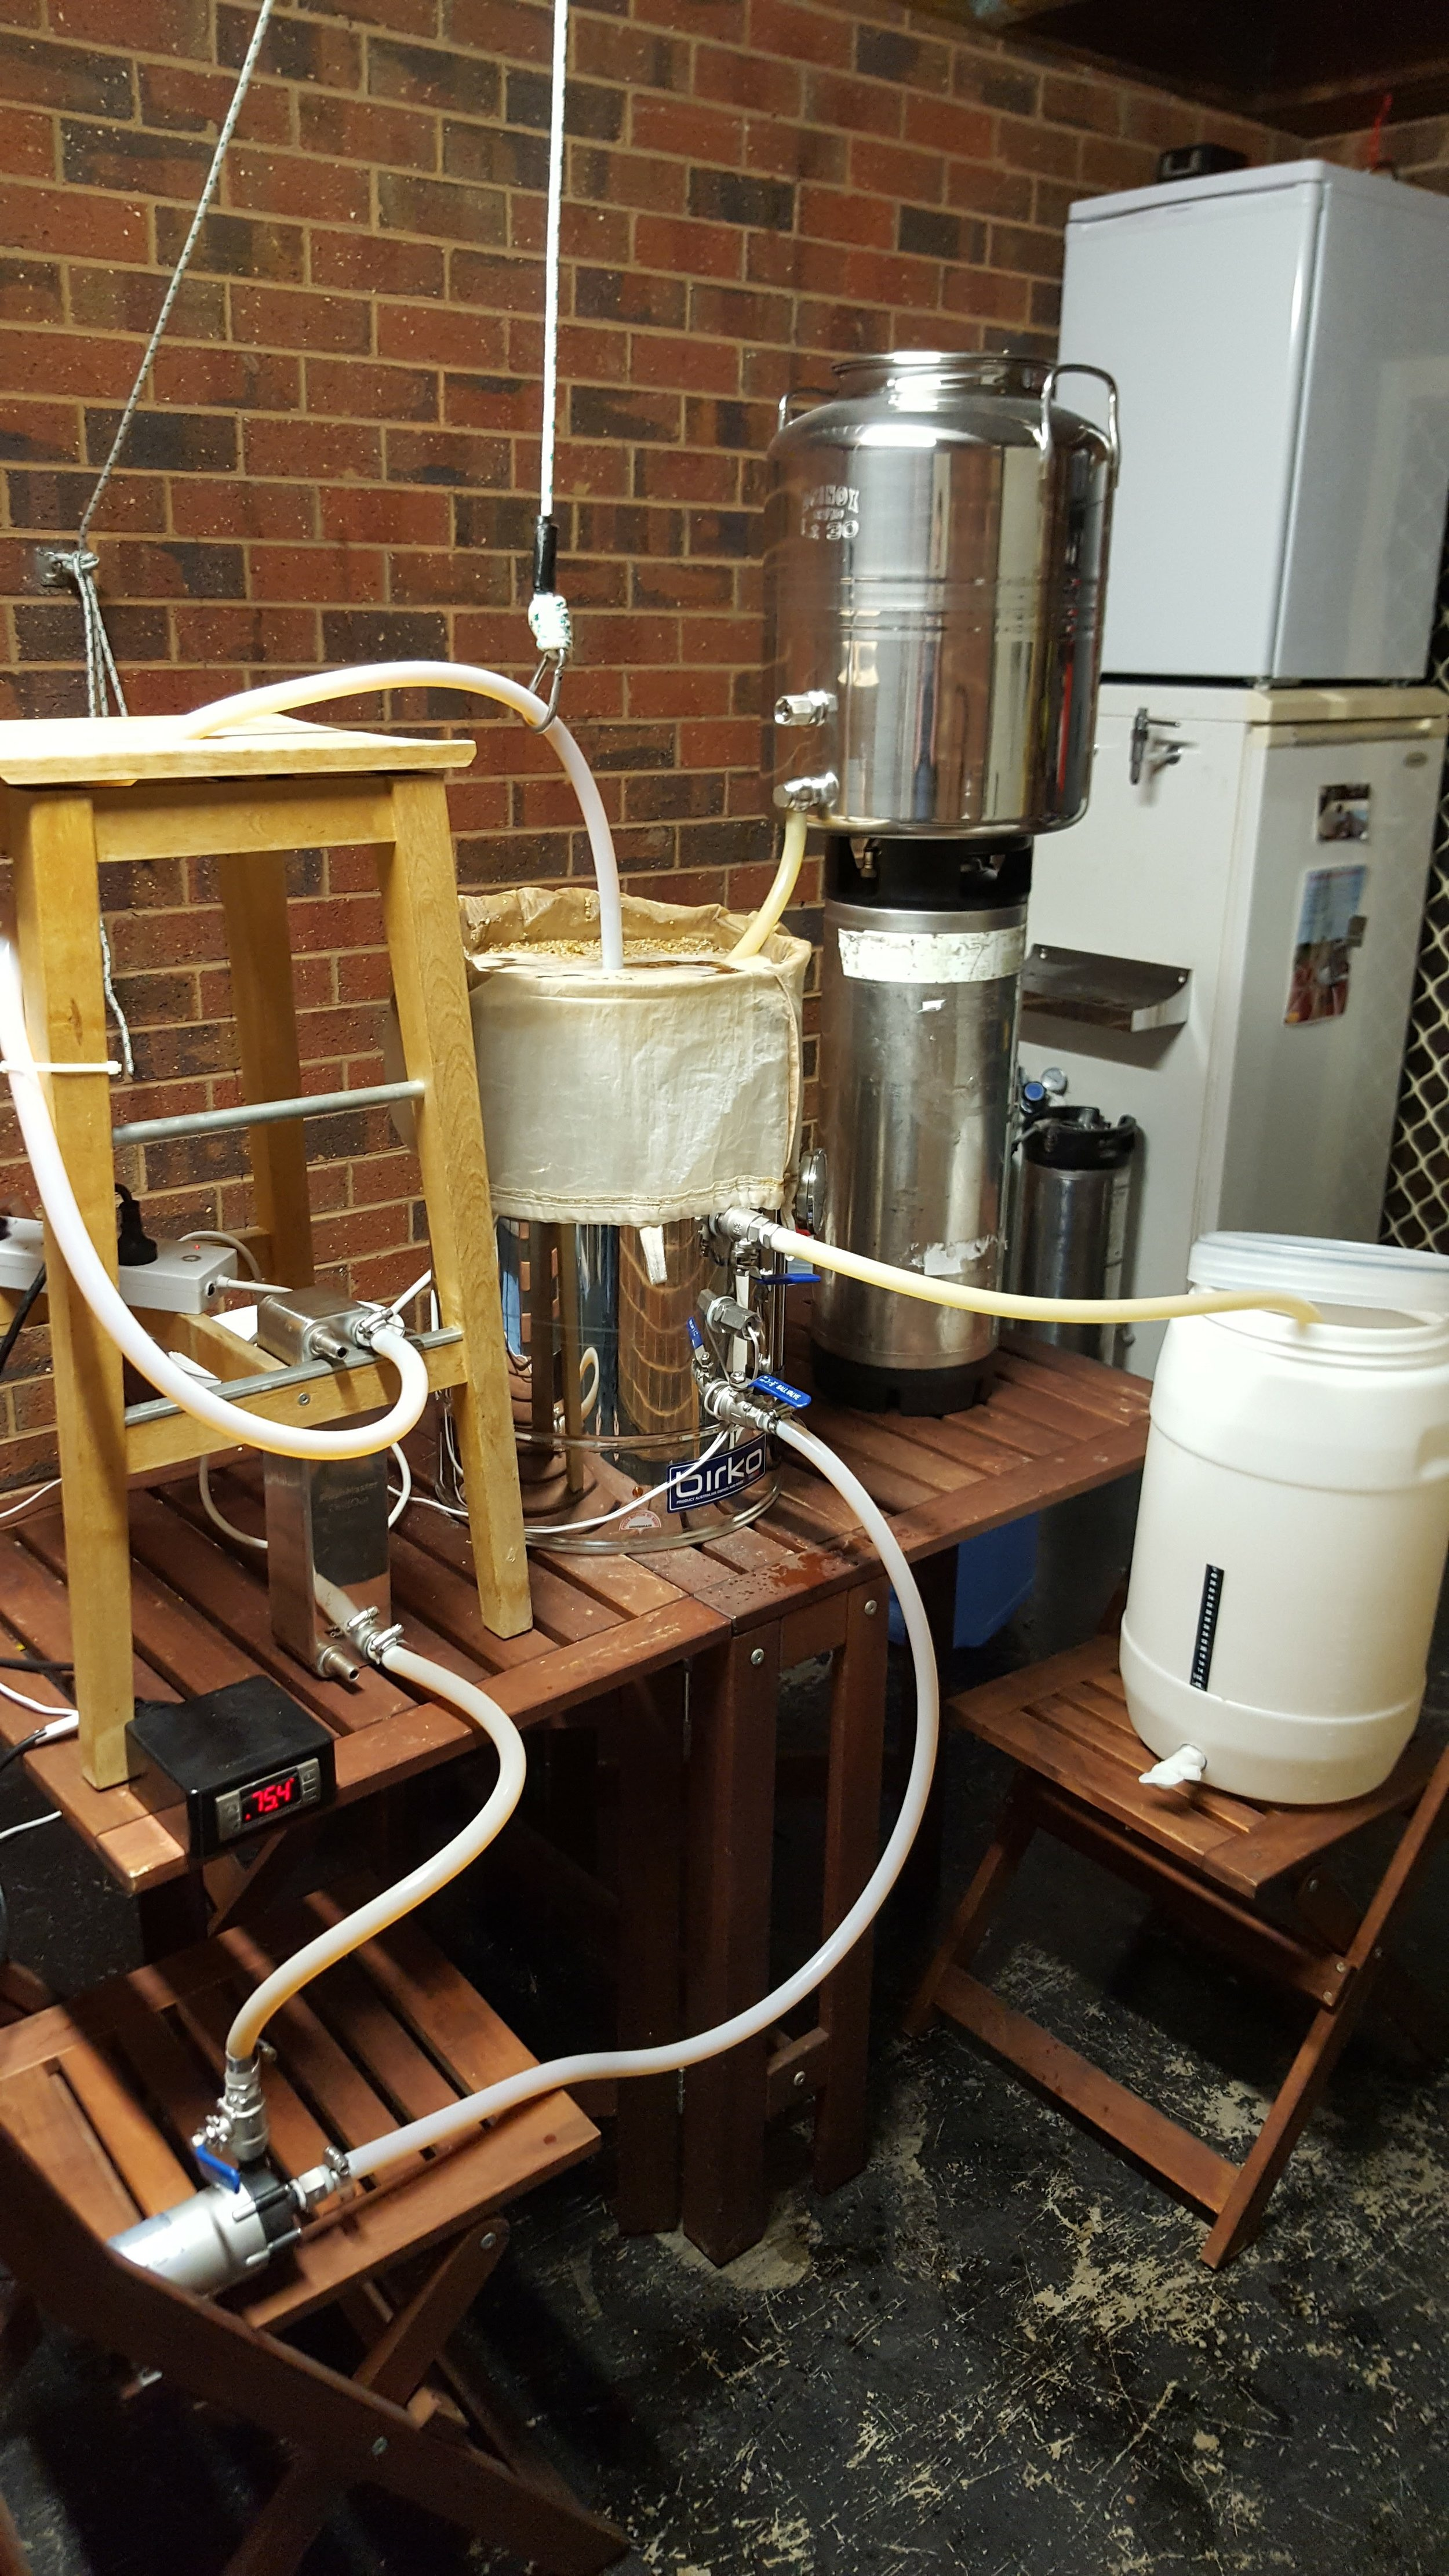 Sparging: adding water and extracting liquid